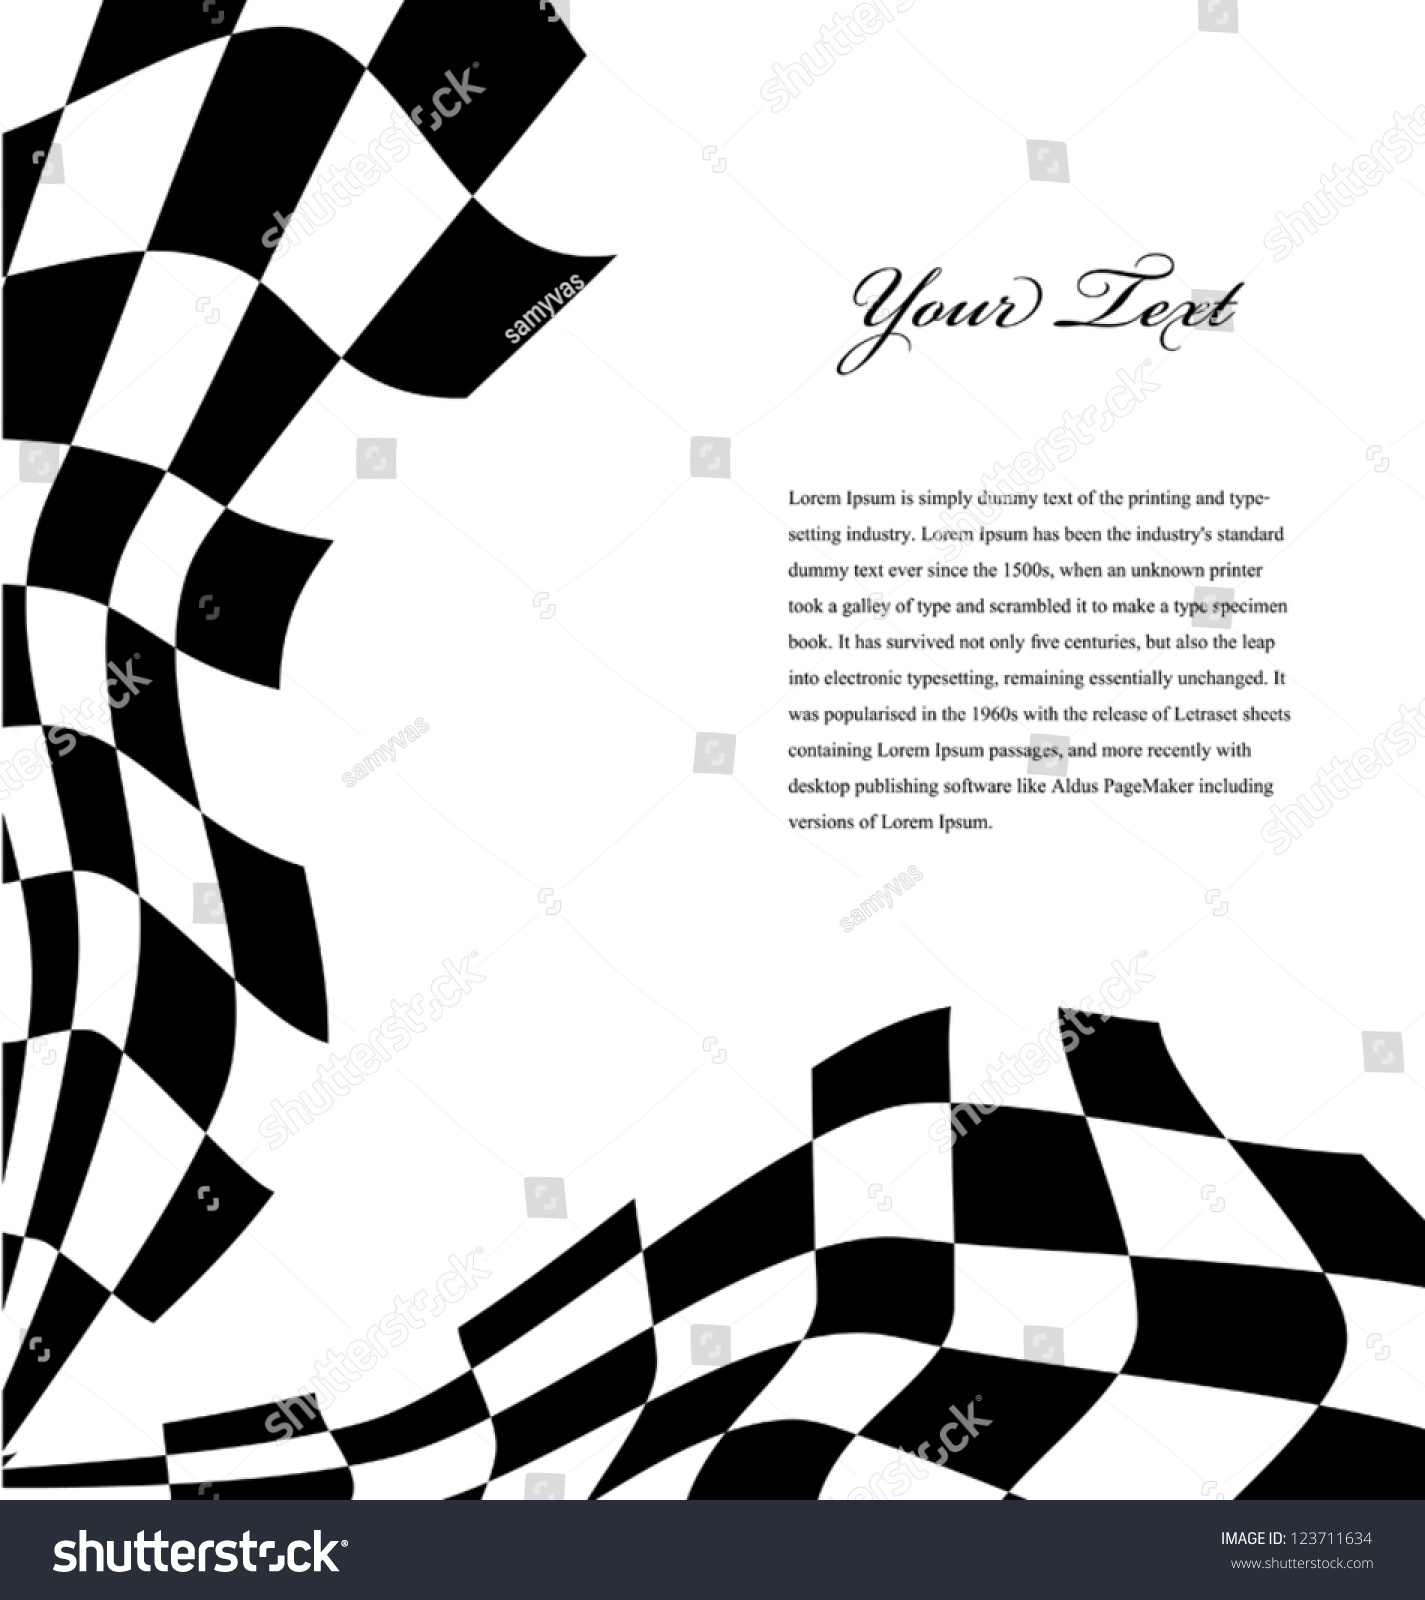 Abstract Background Vector Stock Vector Royalty 123711634 1425x1600